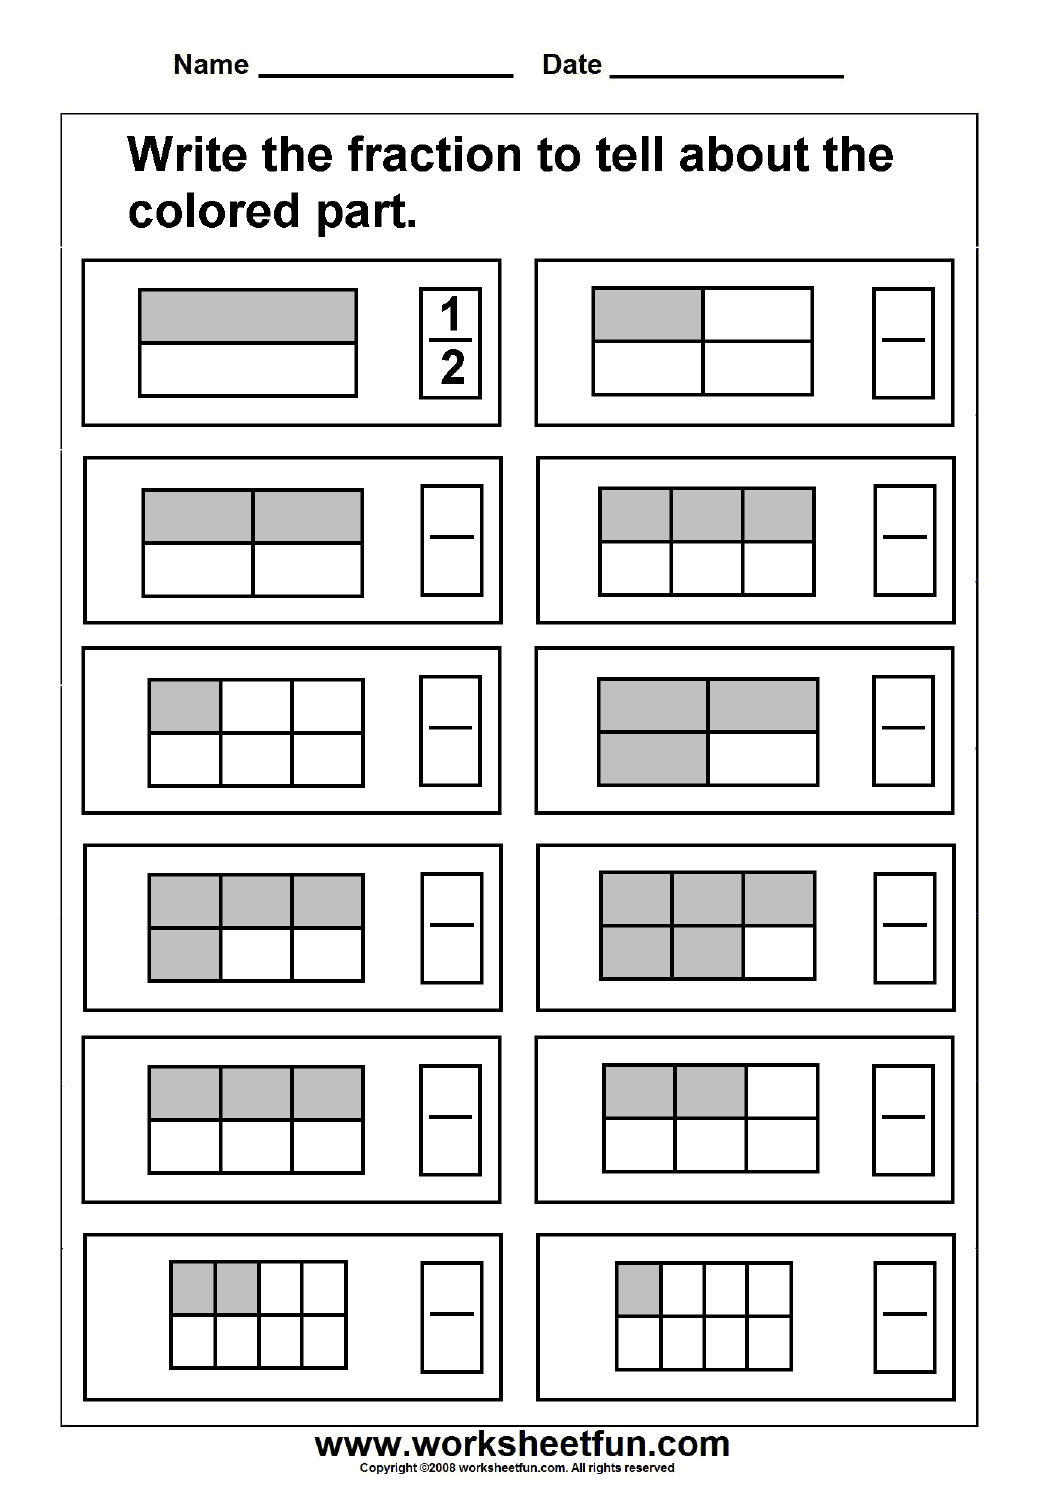 Printables Fraction Worksheet fraction free printable worksheets worksheetfun model 3 worksheets